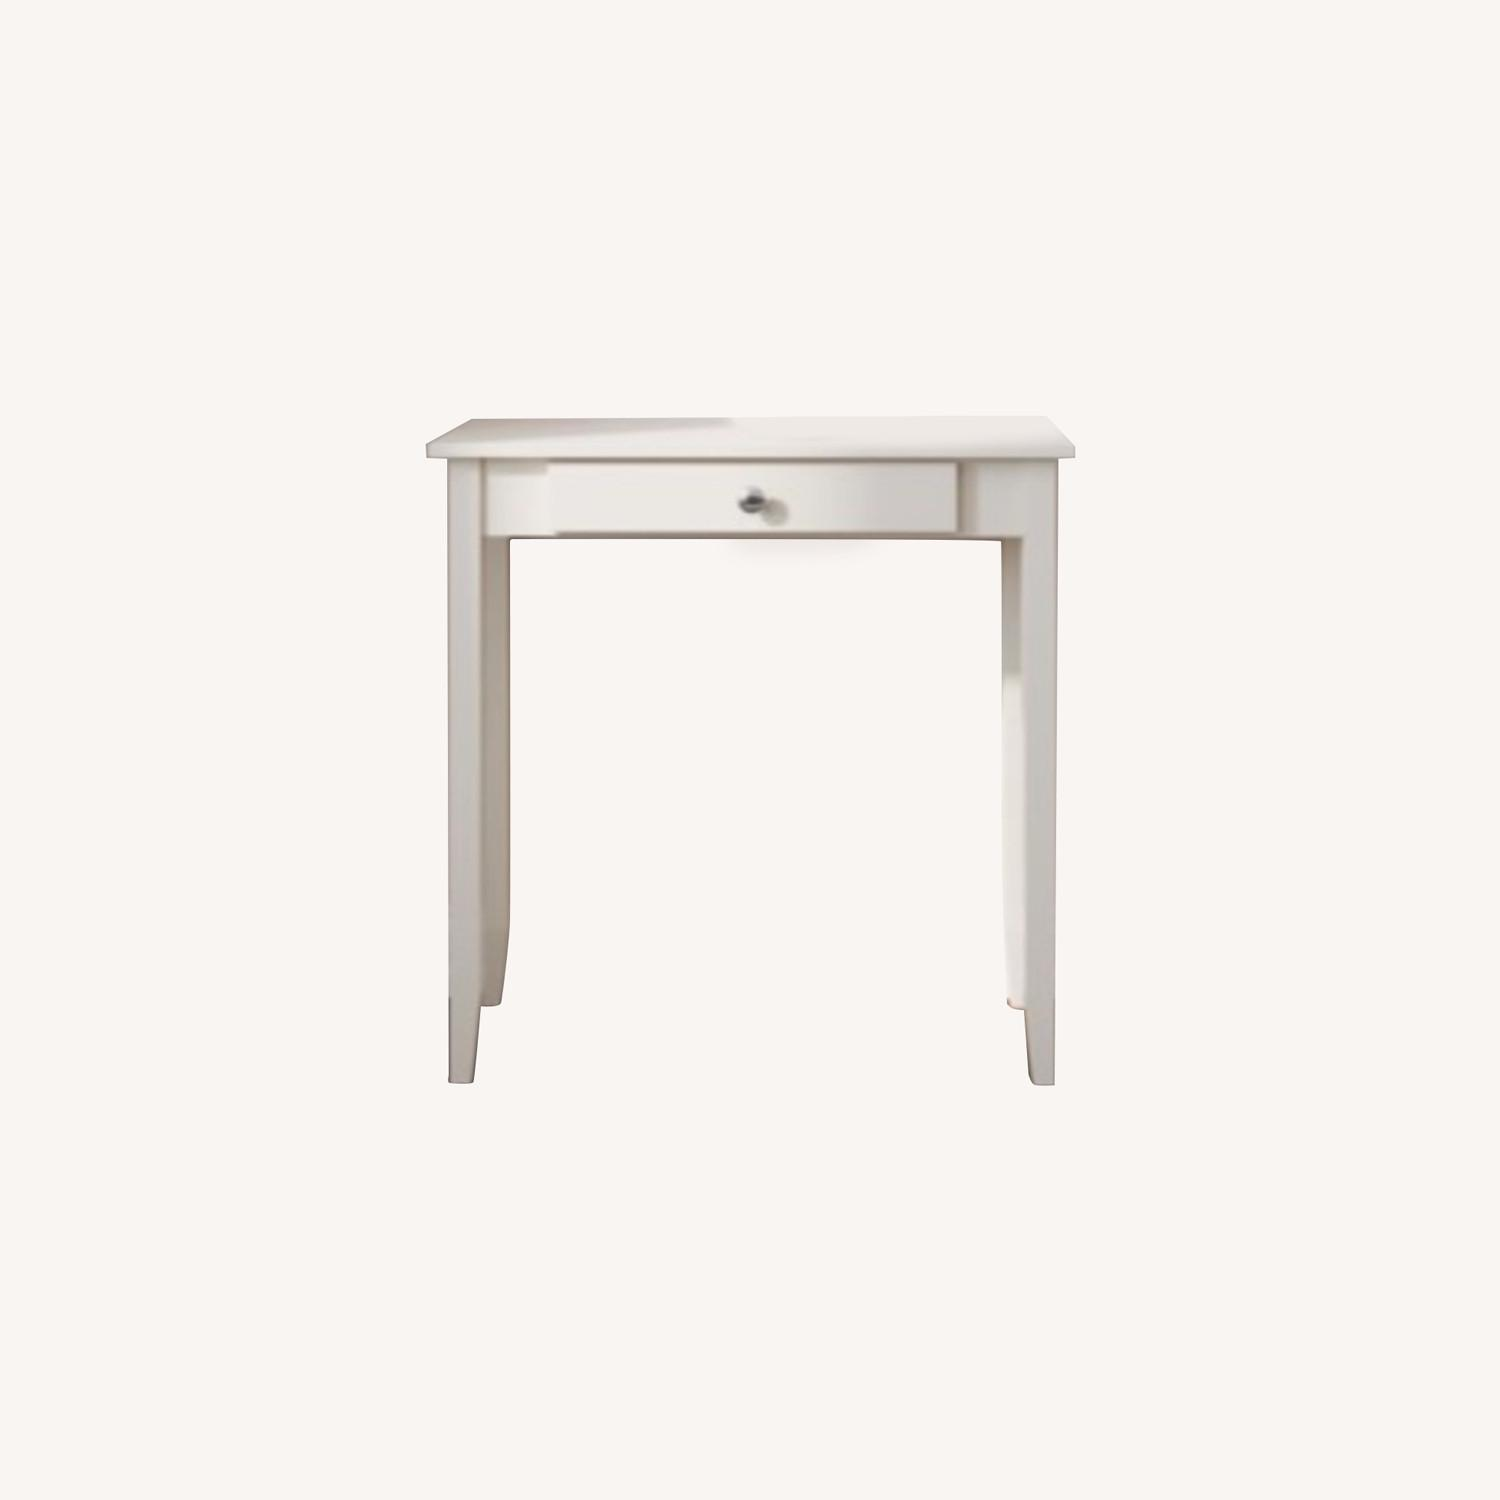 Walmart White Vanity/Console Table with Drawer - image-0